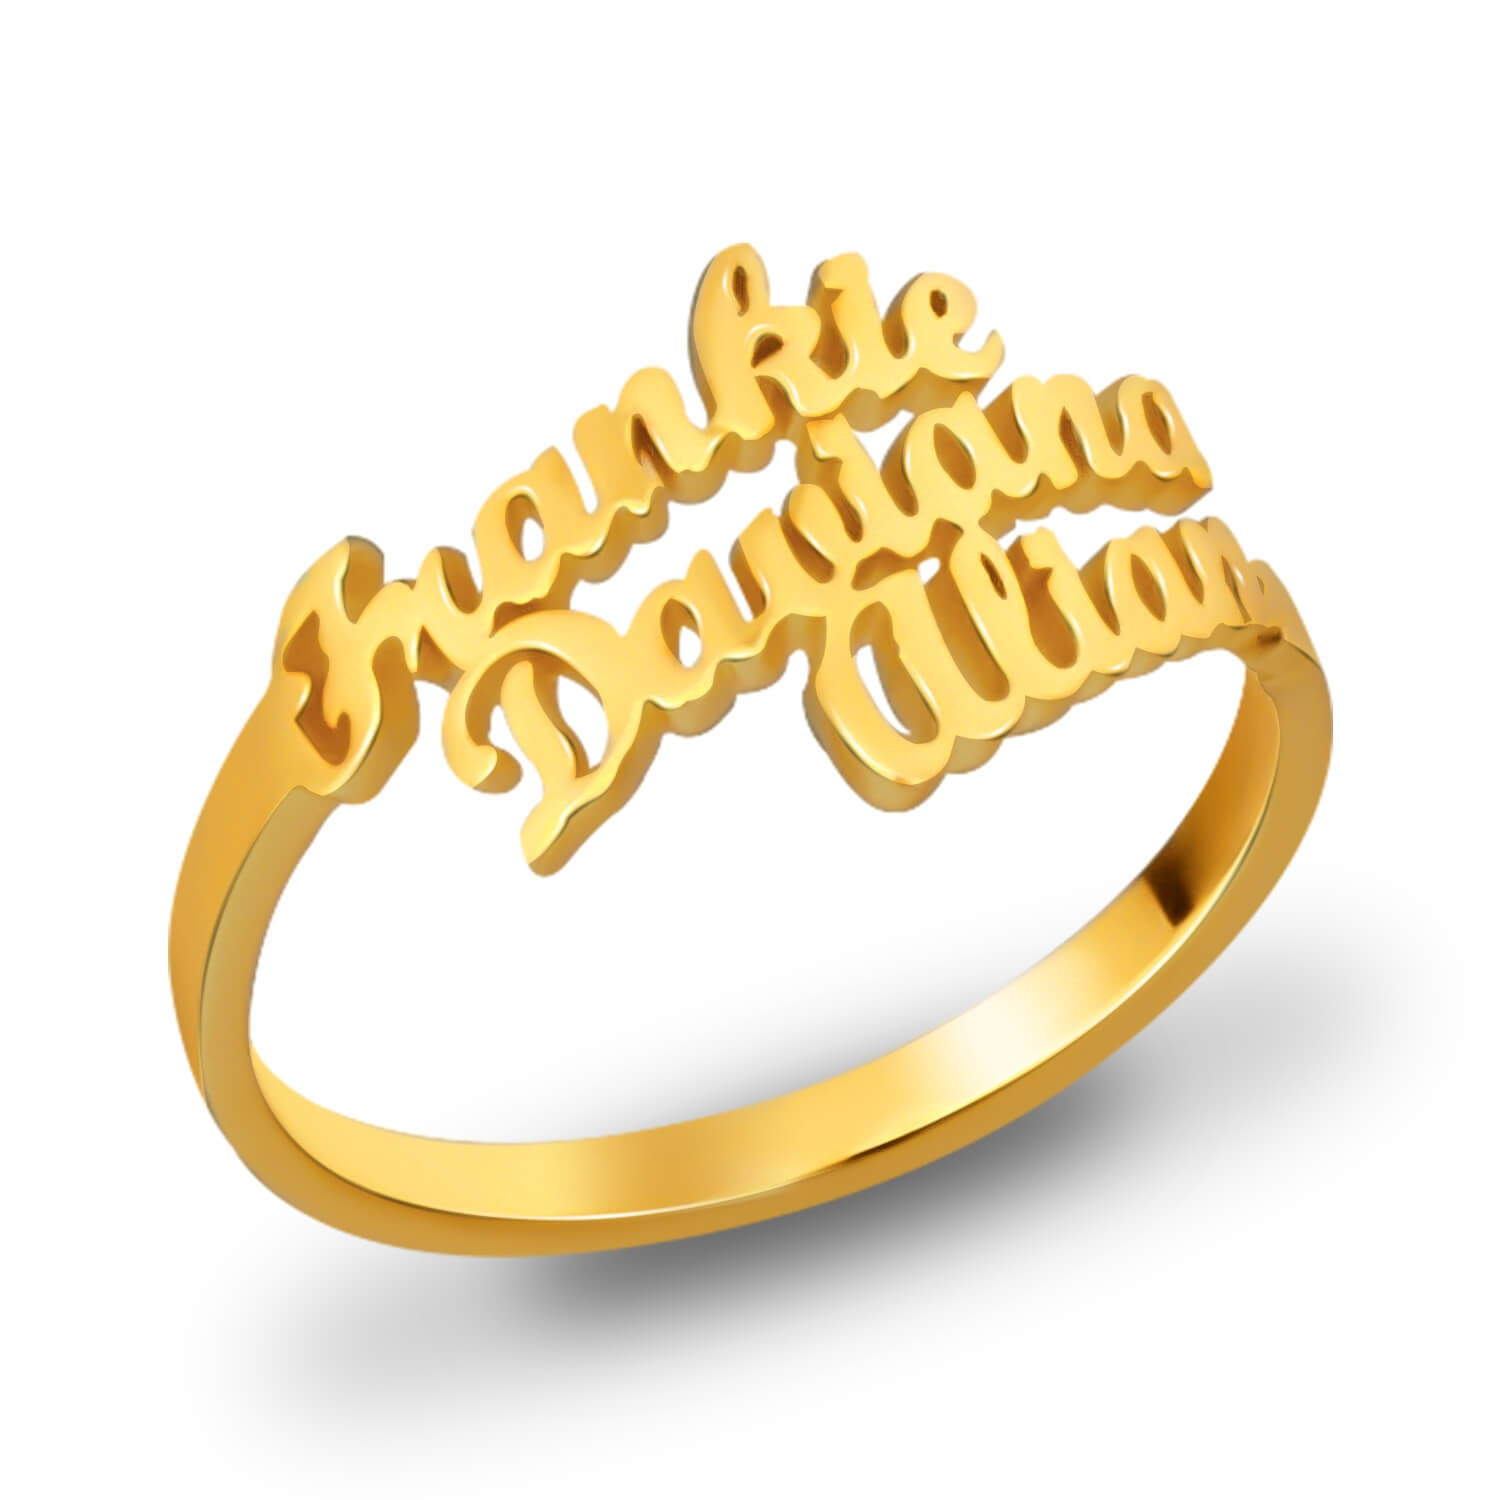 Personalized Ring 18K Gold Plated with Three Names